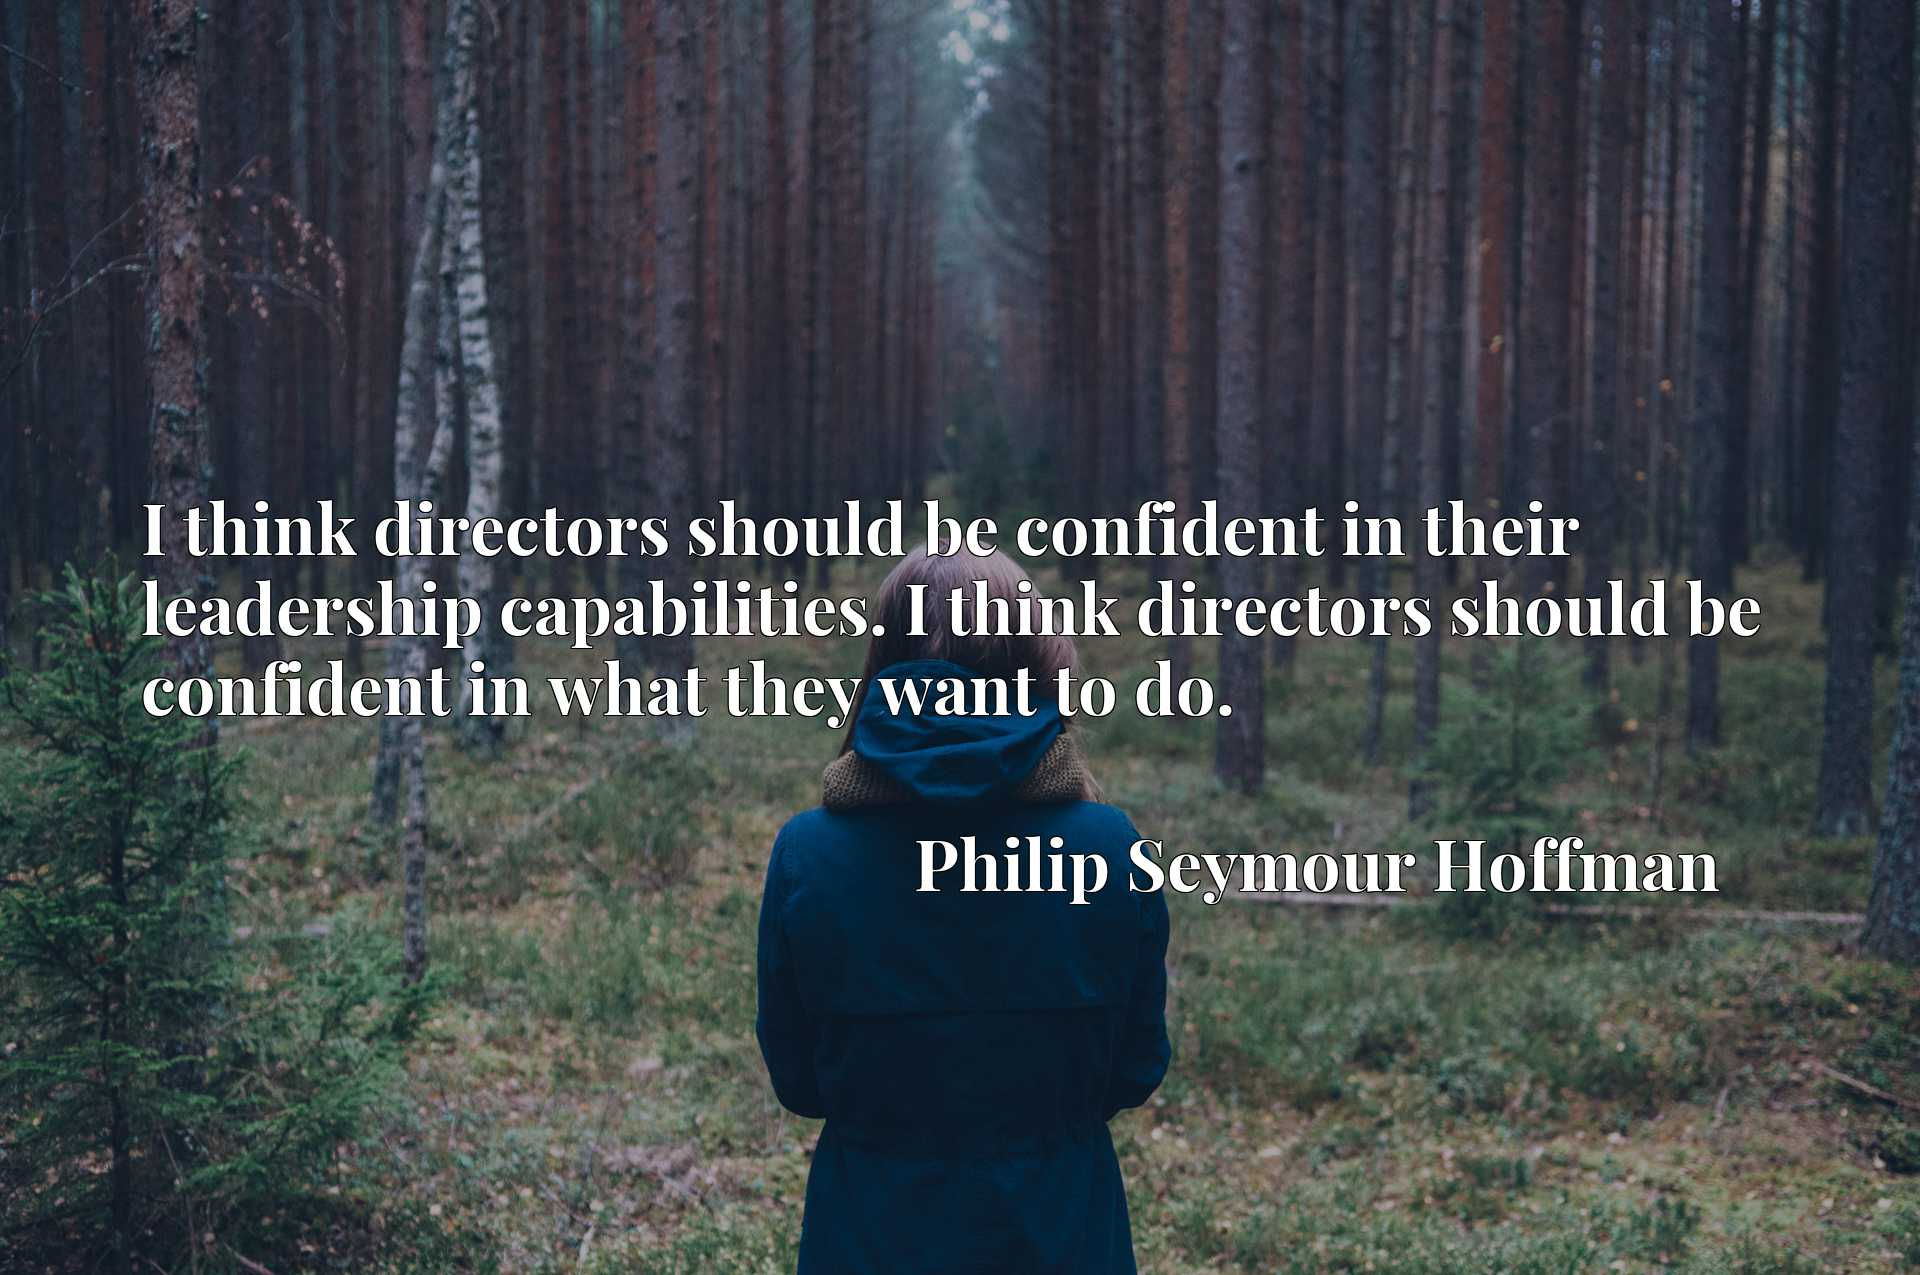 I think directors should be confident in their leadership capabilities. I think directors should be confident in what they want to do.